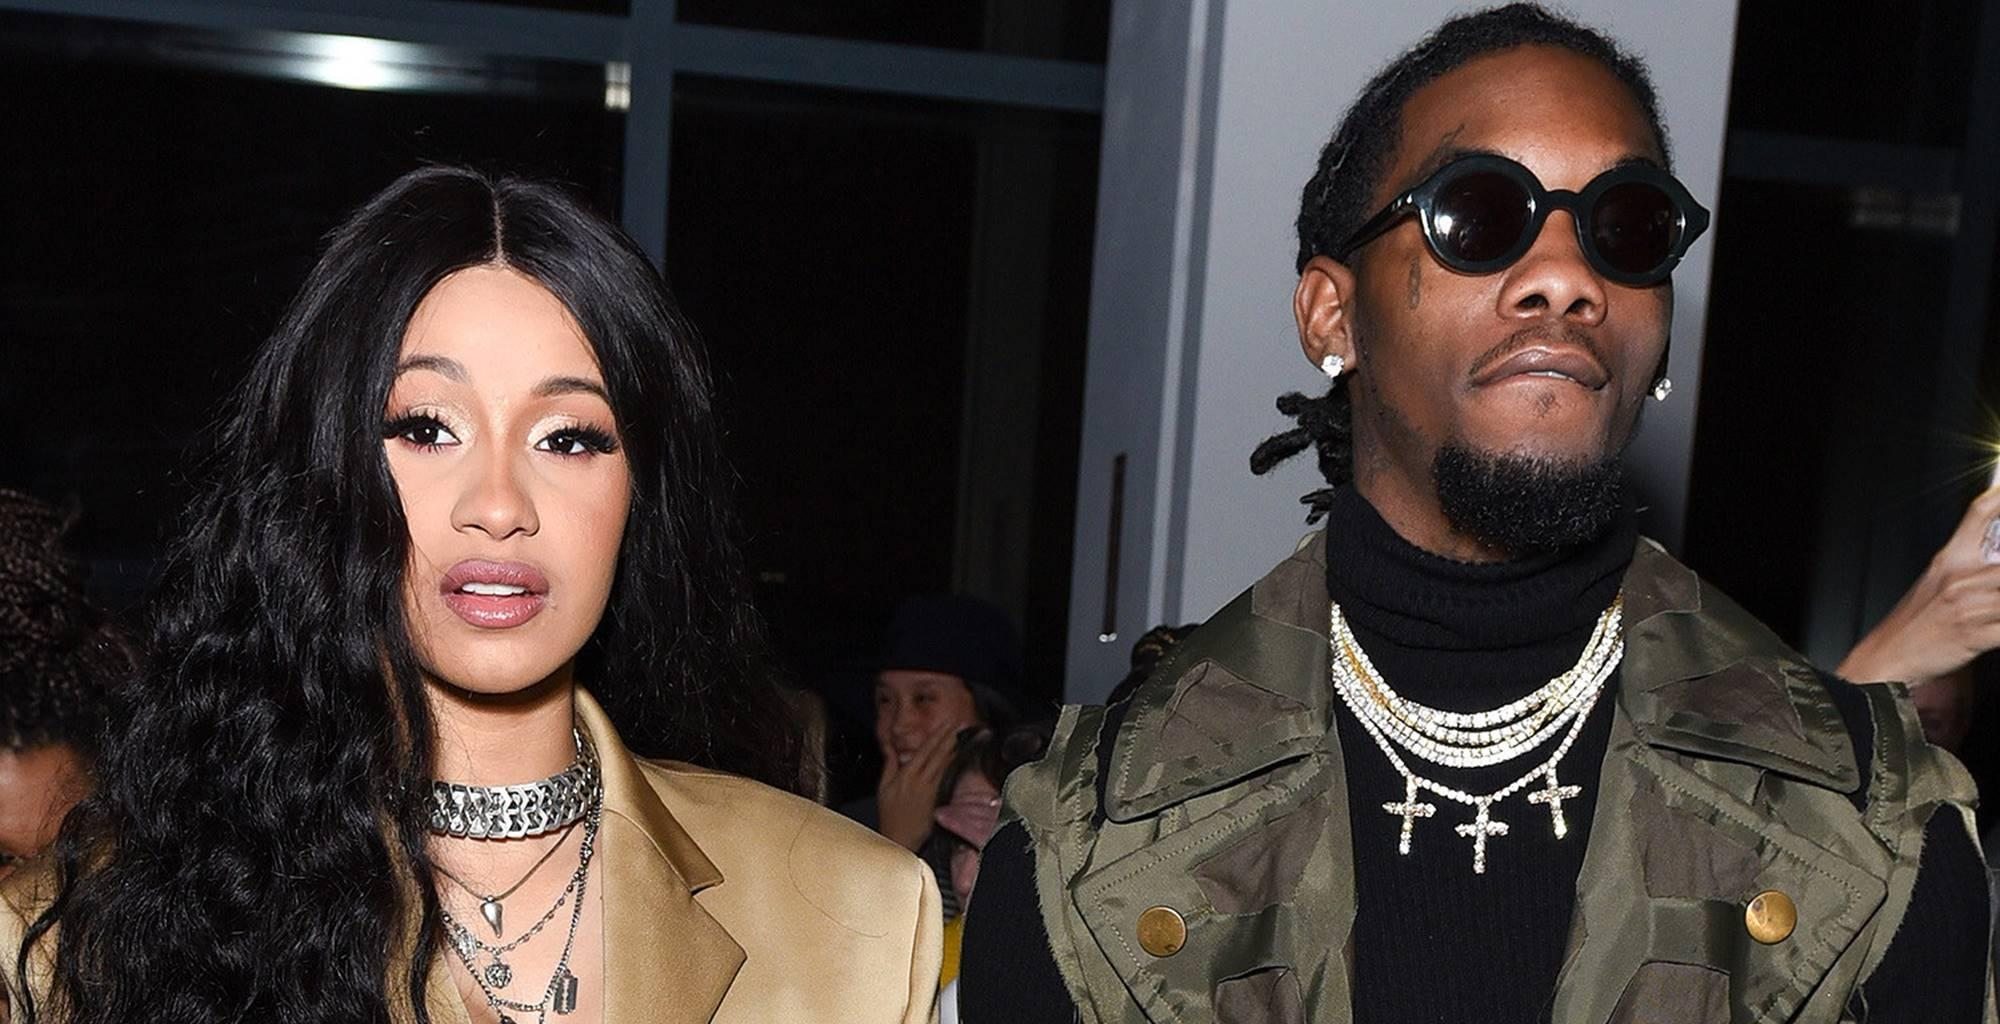 Cardi B Responds To Offset's Romantic Gesture In Video: 'Divorce Is Not A Publicity Stunt'